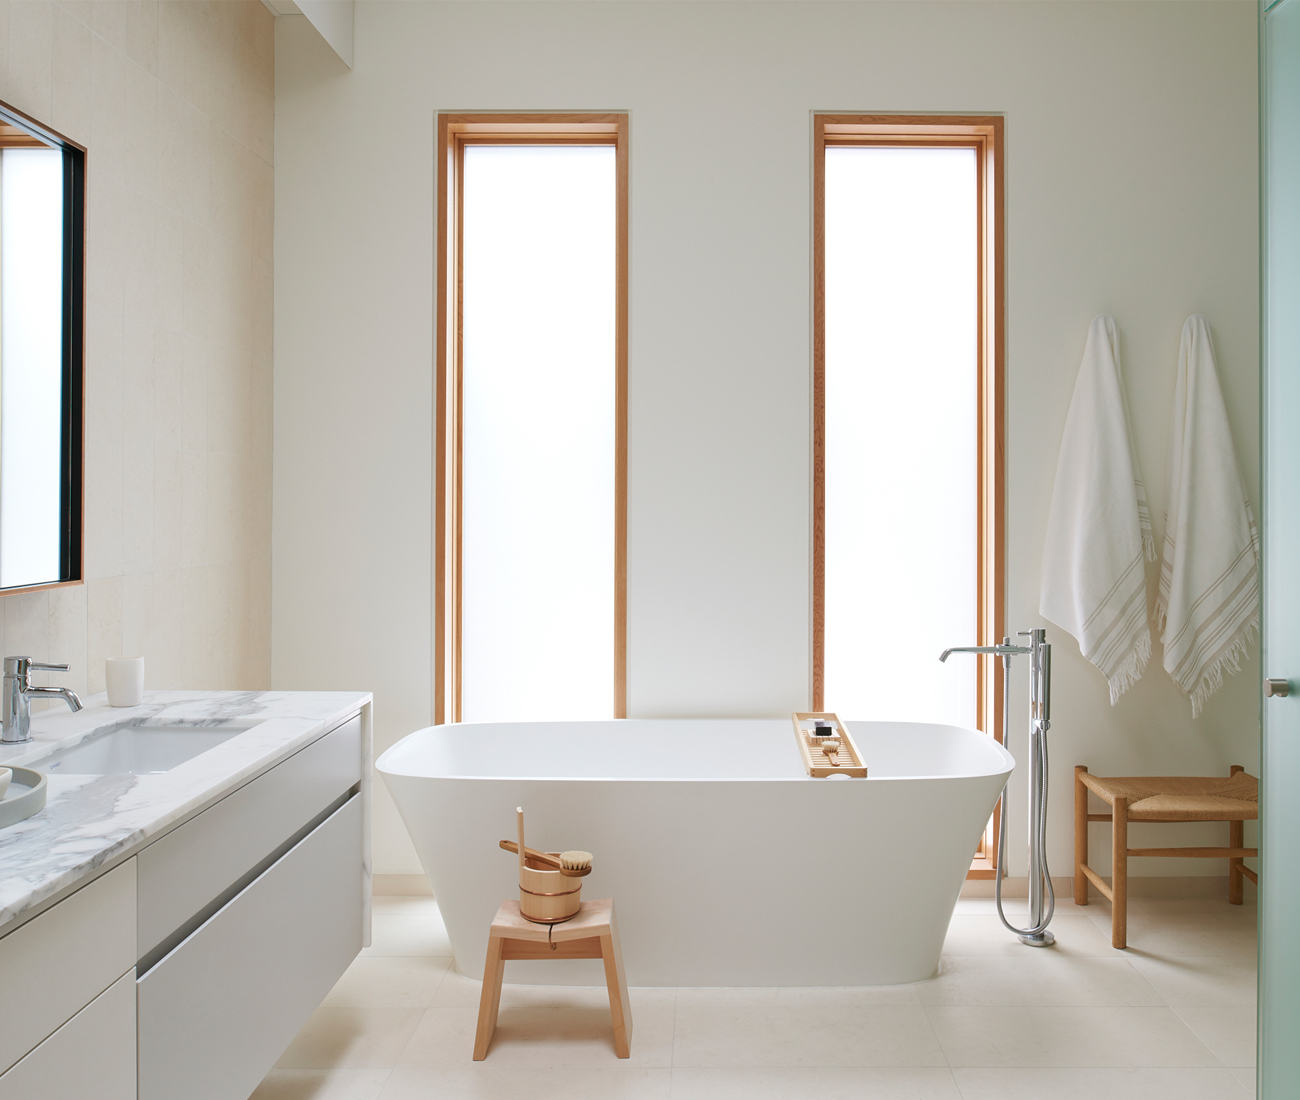 Stone Tile limestone runs from the floor up behind the vanity. Mjölk accessories echo the mahogany trim around the windows. Photo by Alex Lukey.